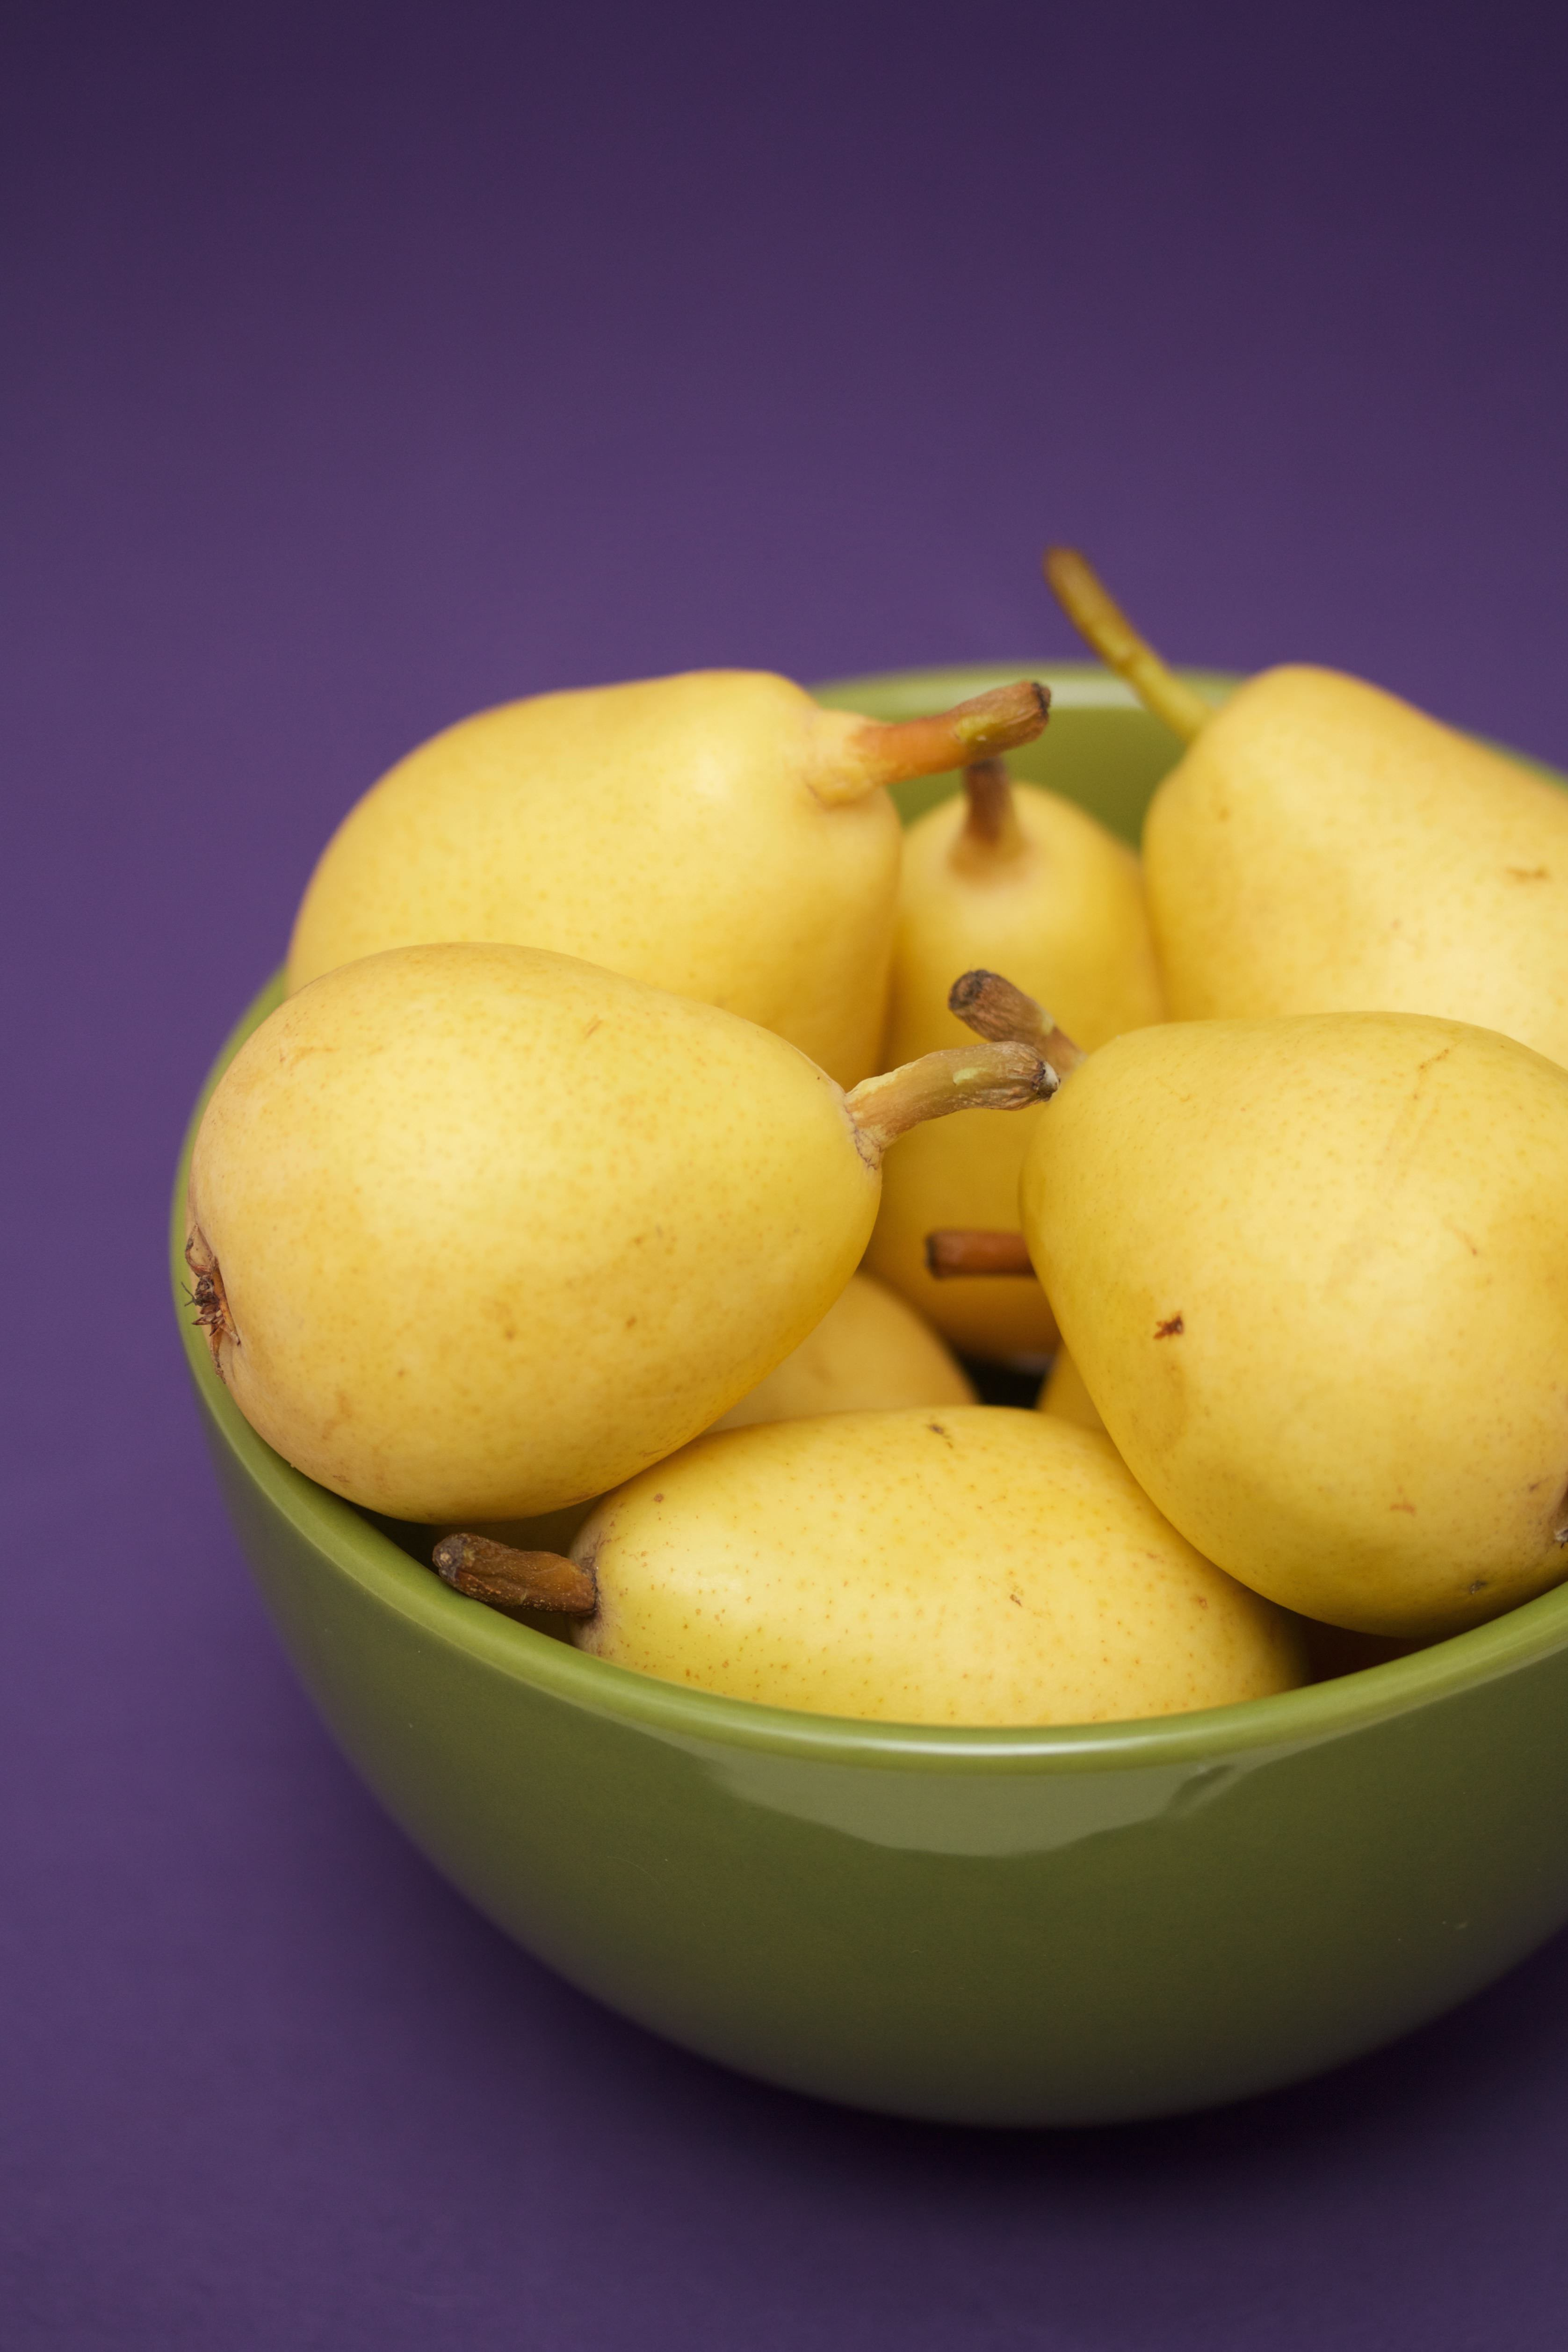 Yellow pears in a green bowl on a purple background